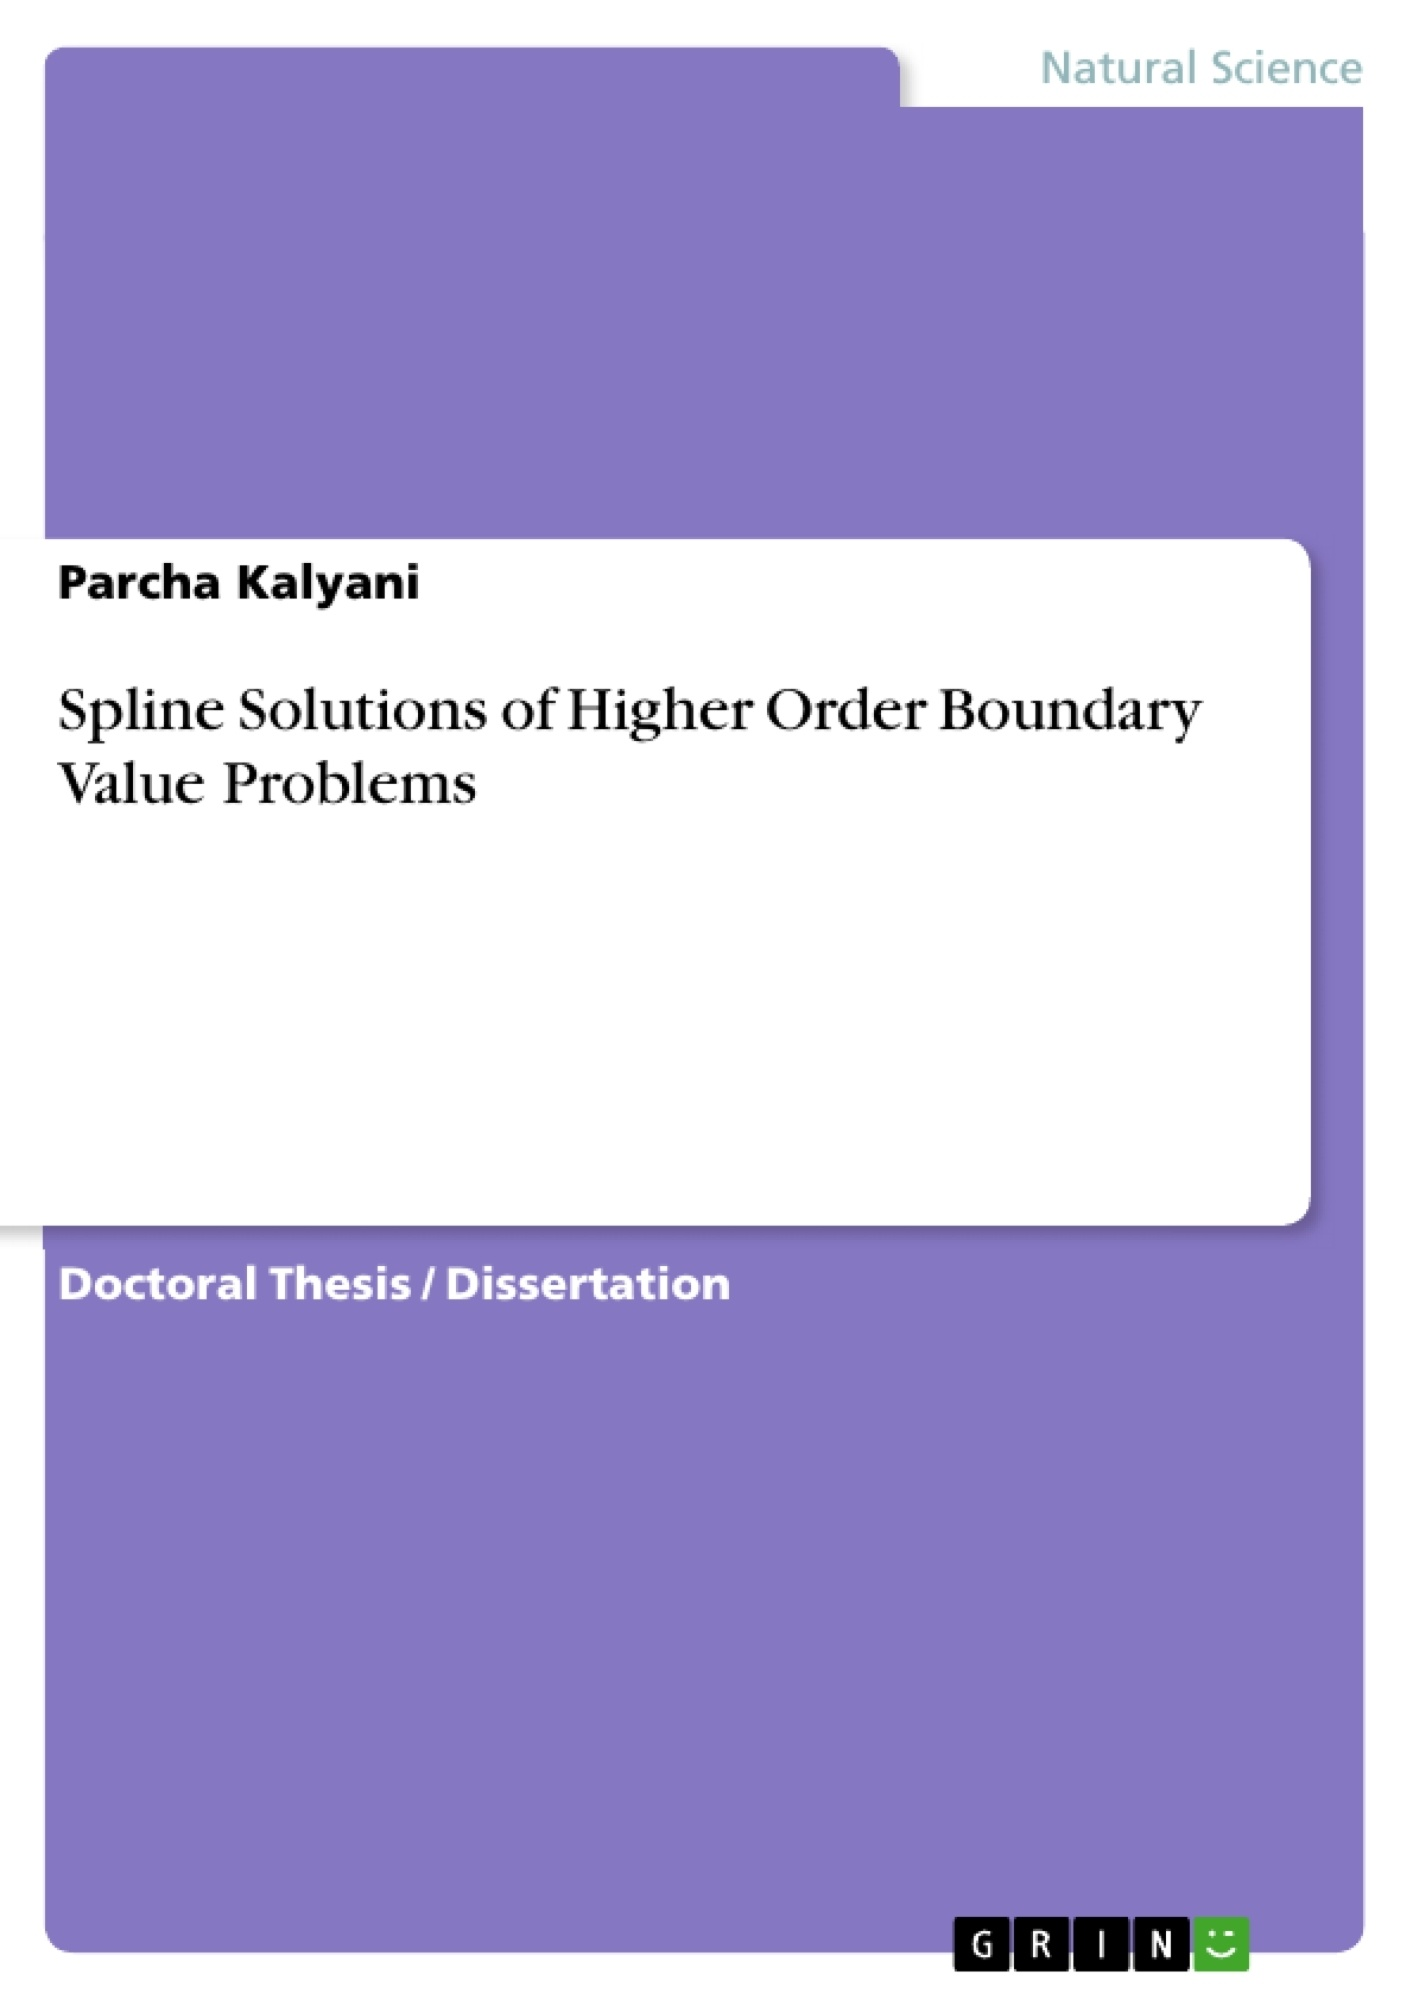 Title: Spline Solutions of Higher Order Boundary Value Problems